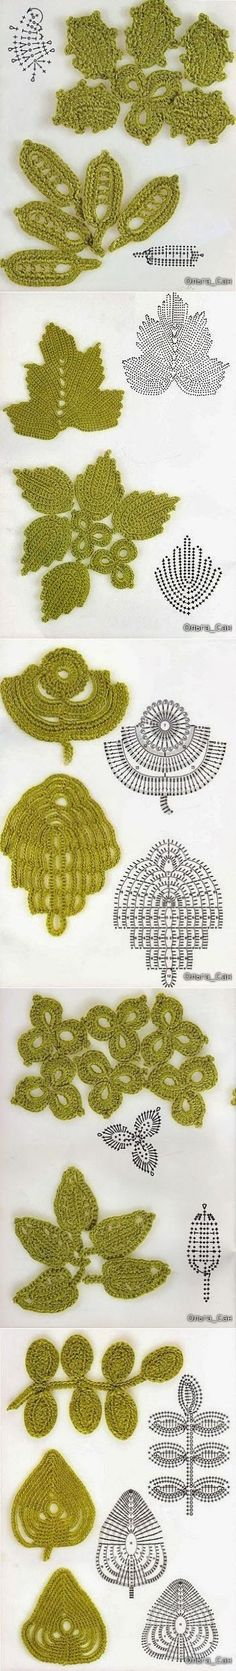 #Crochet_Stitches -- Beautiful leaves with charts! Enjoy from #KnittingGuru ** http://www.KnittingGuruDesigns.blogspot.com